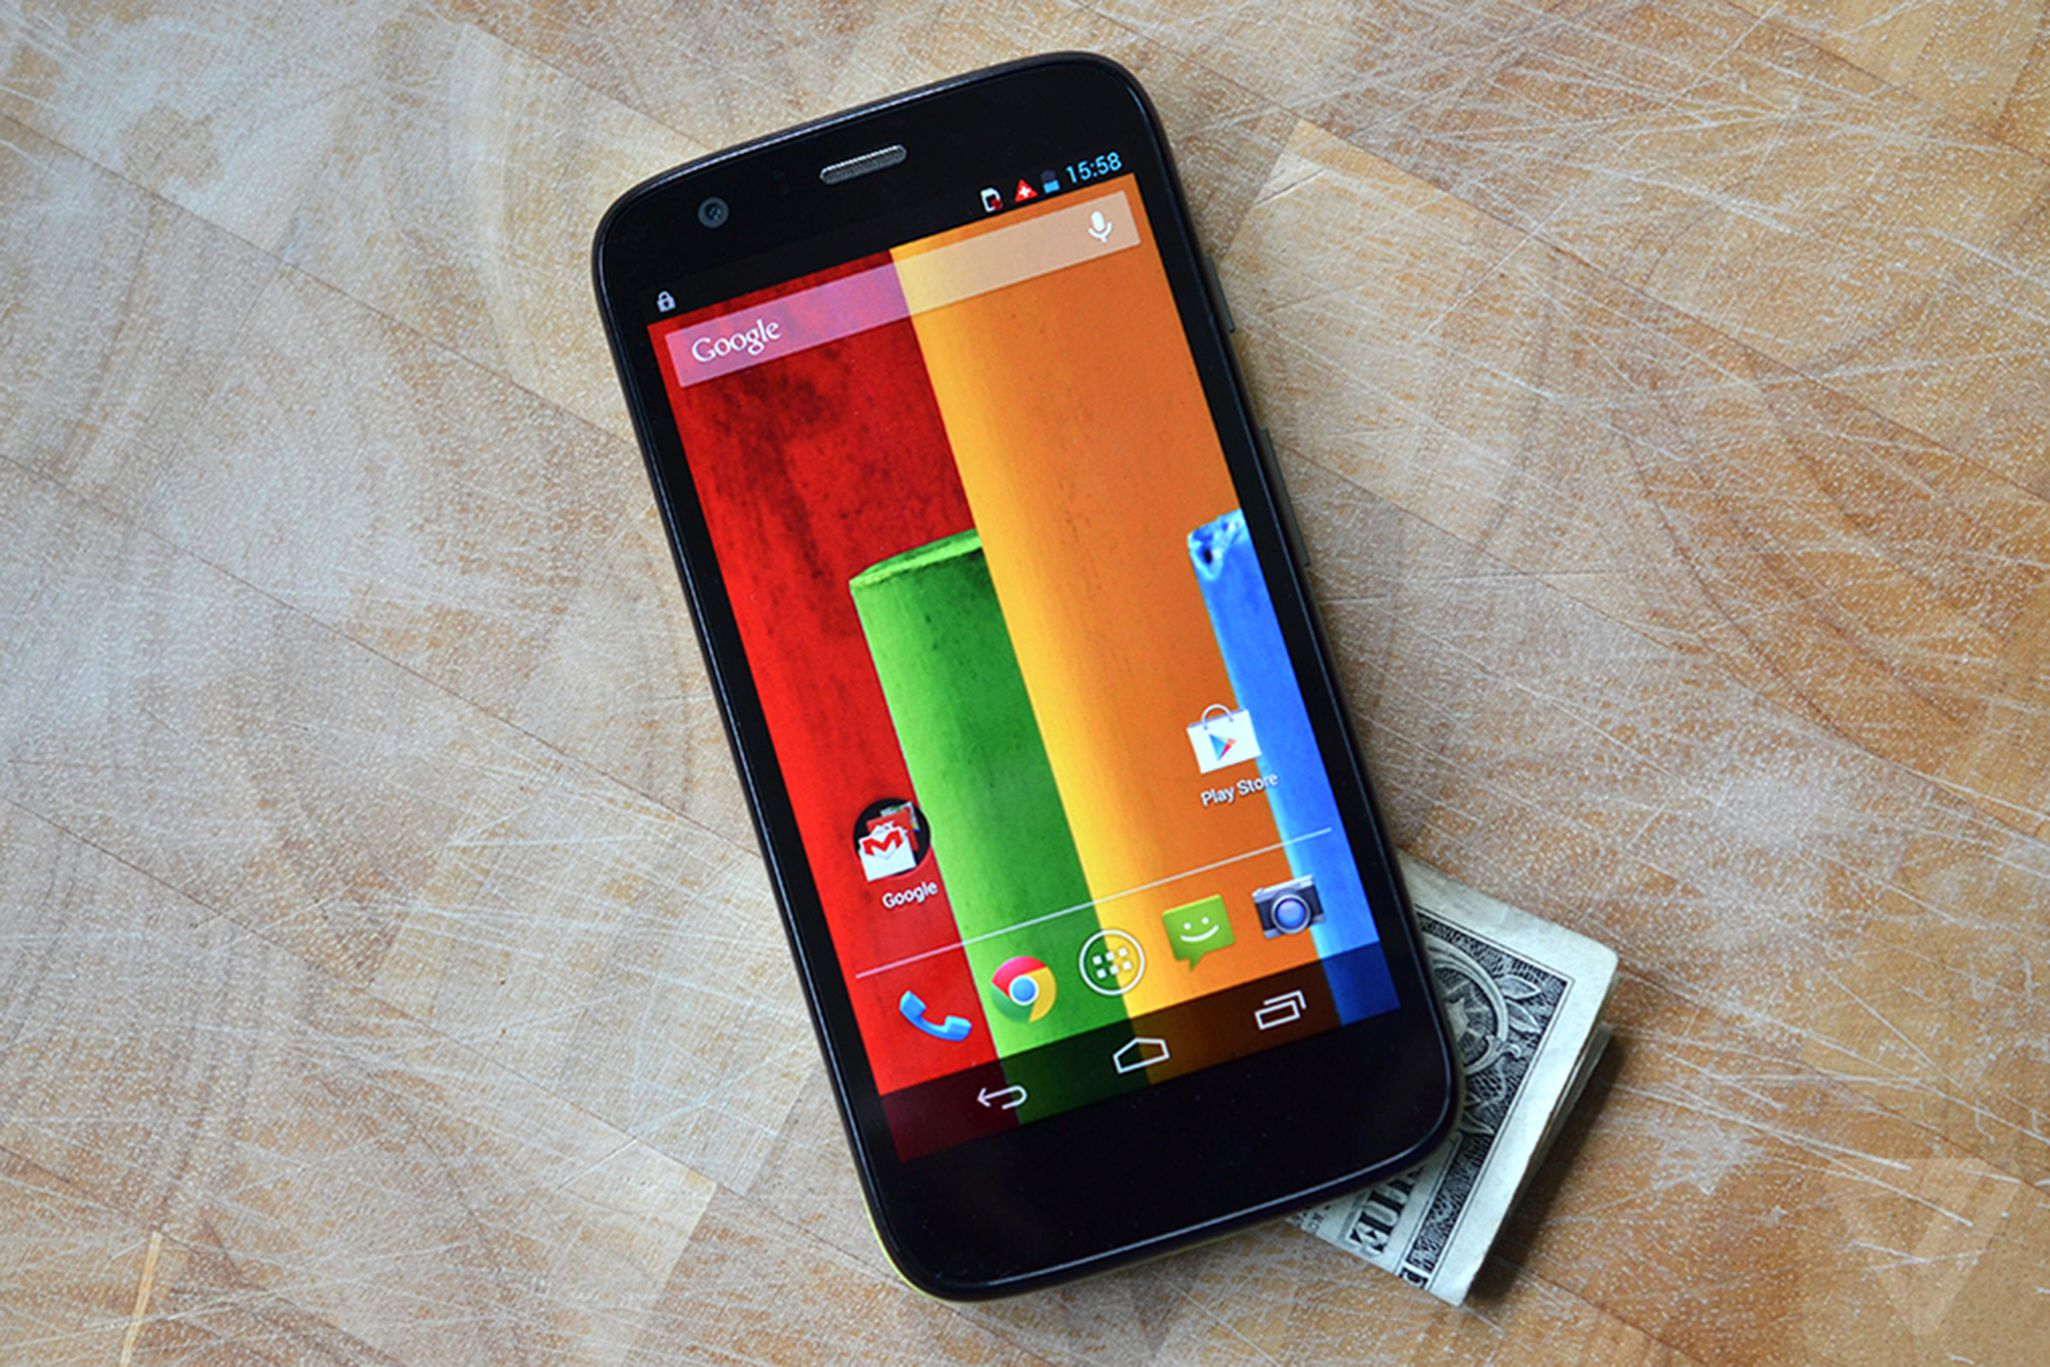 Motorola Moto G review: how good can a $179 smartphone be? | The Verge